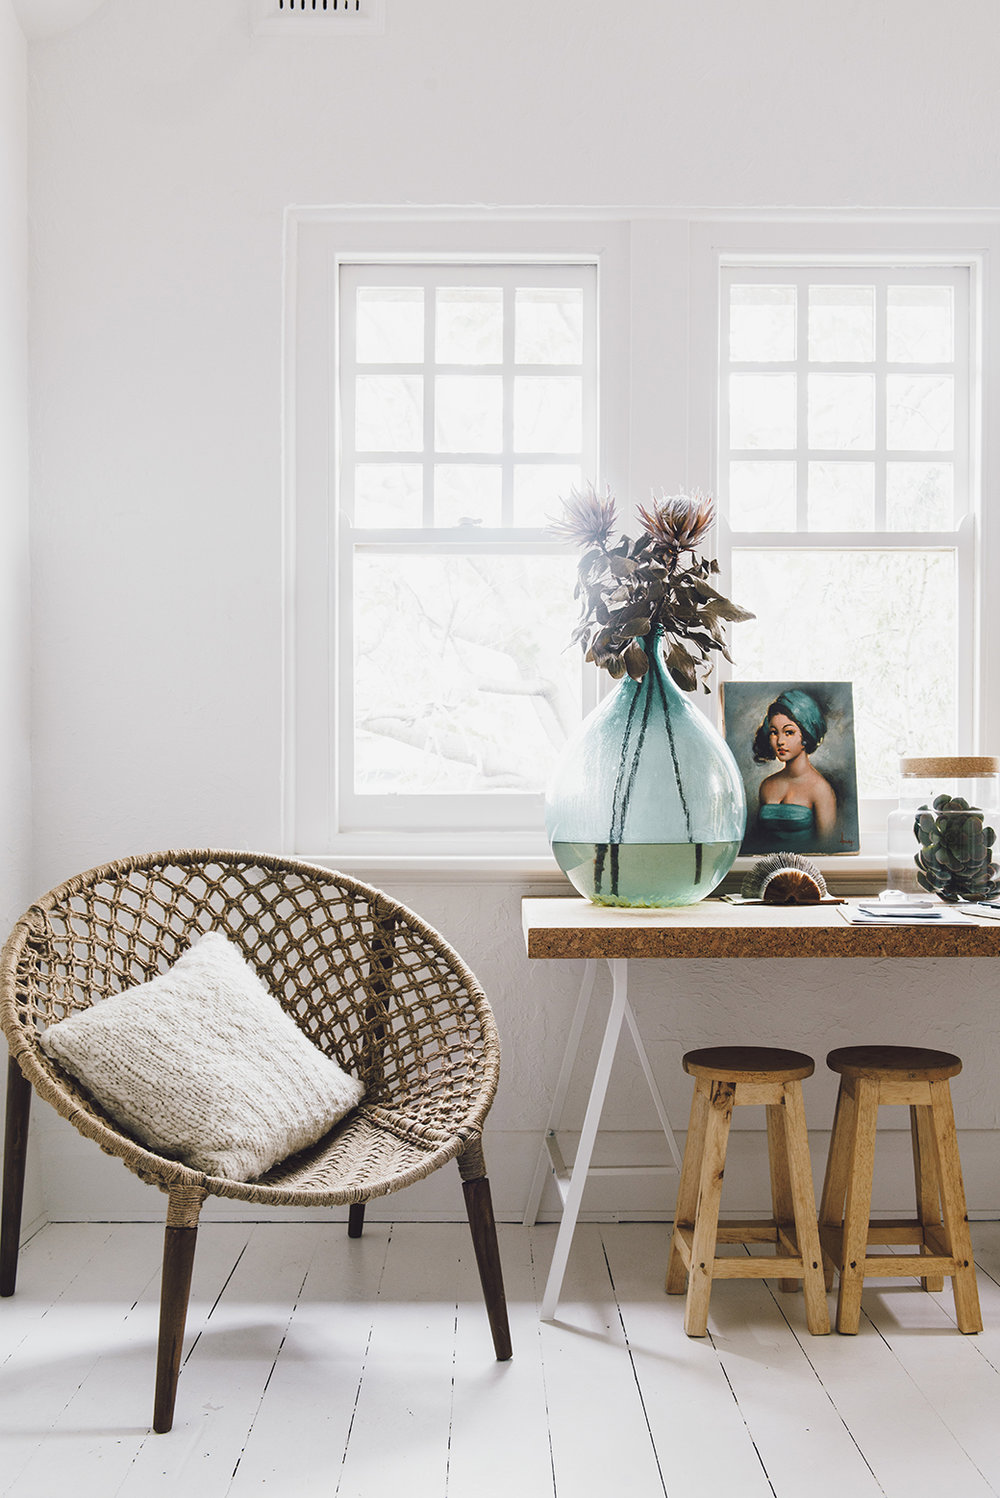 The woven string chair is modern but references '50s/'60s style. The fabulous aqua glass jar – a flea-market find – makes a color-perfect vignette with the portrait. The trestle table with its cork top and the natural timber stools are well-priced pieces.